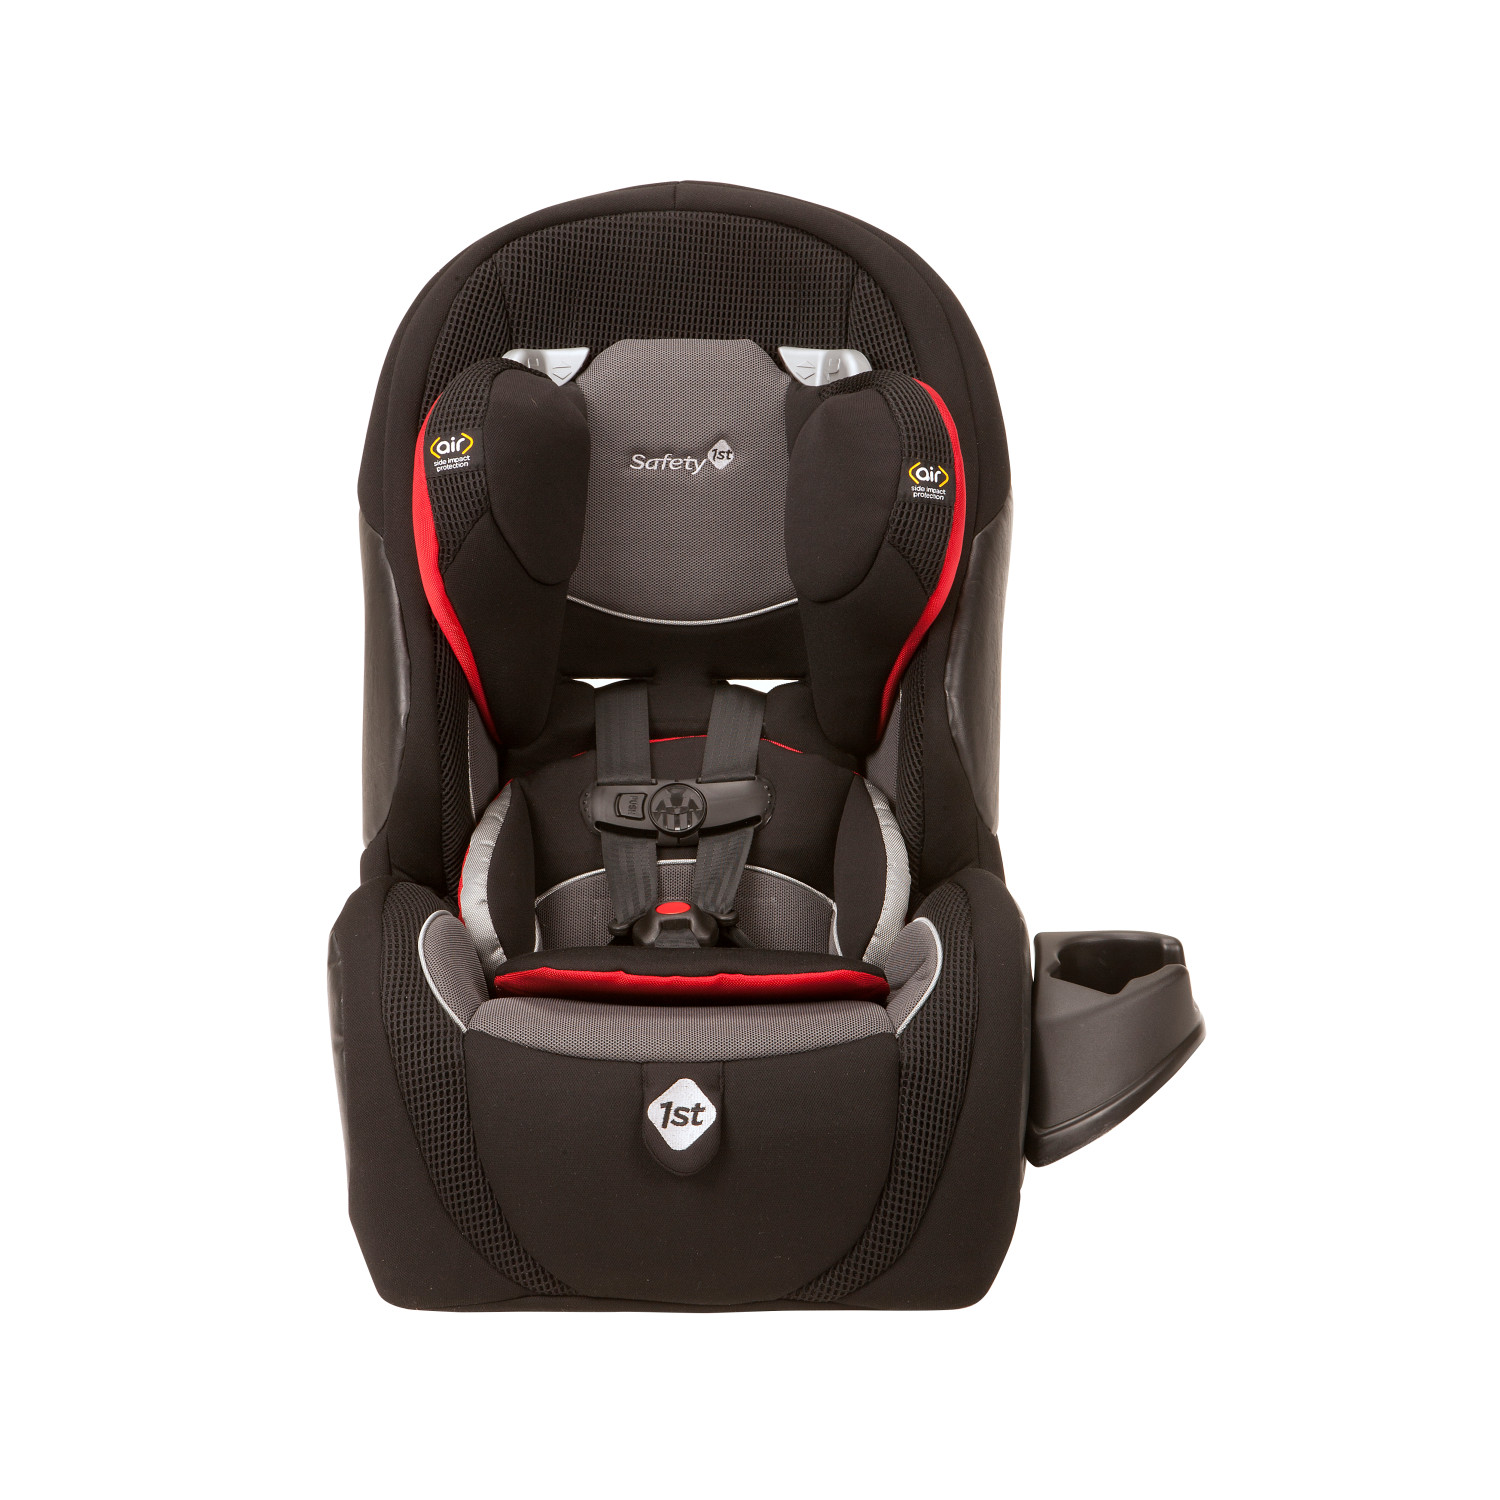 Safety-1st-Complete-Air-65-Convertible-Car-Seat thumbnail 43